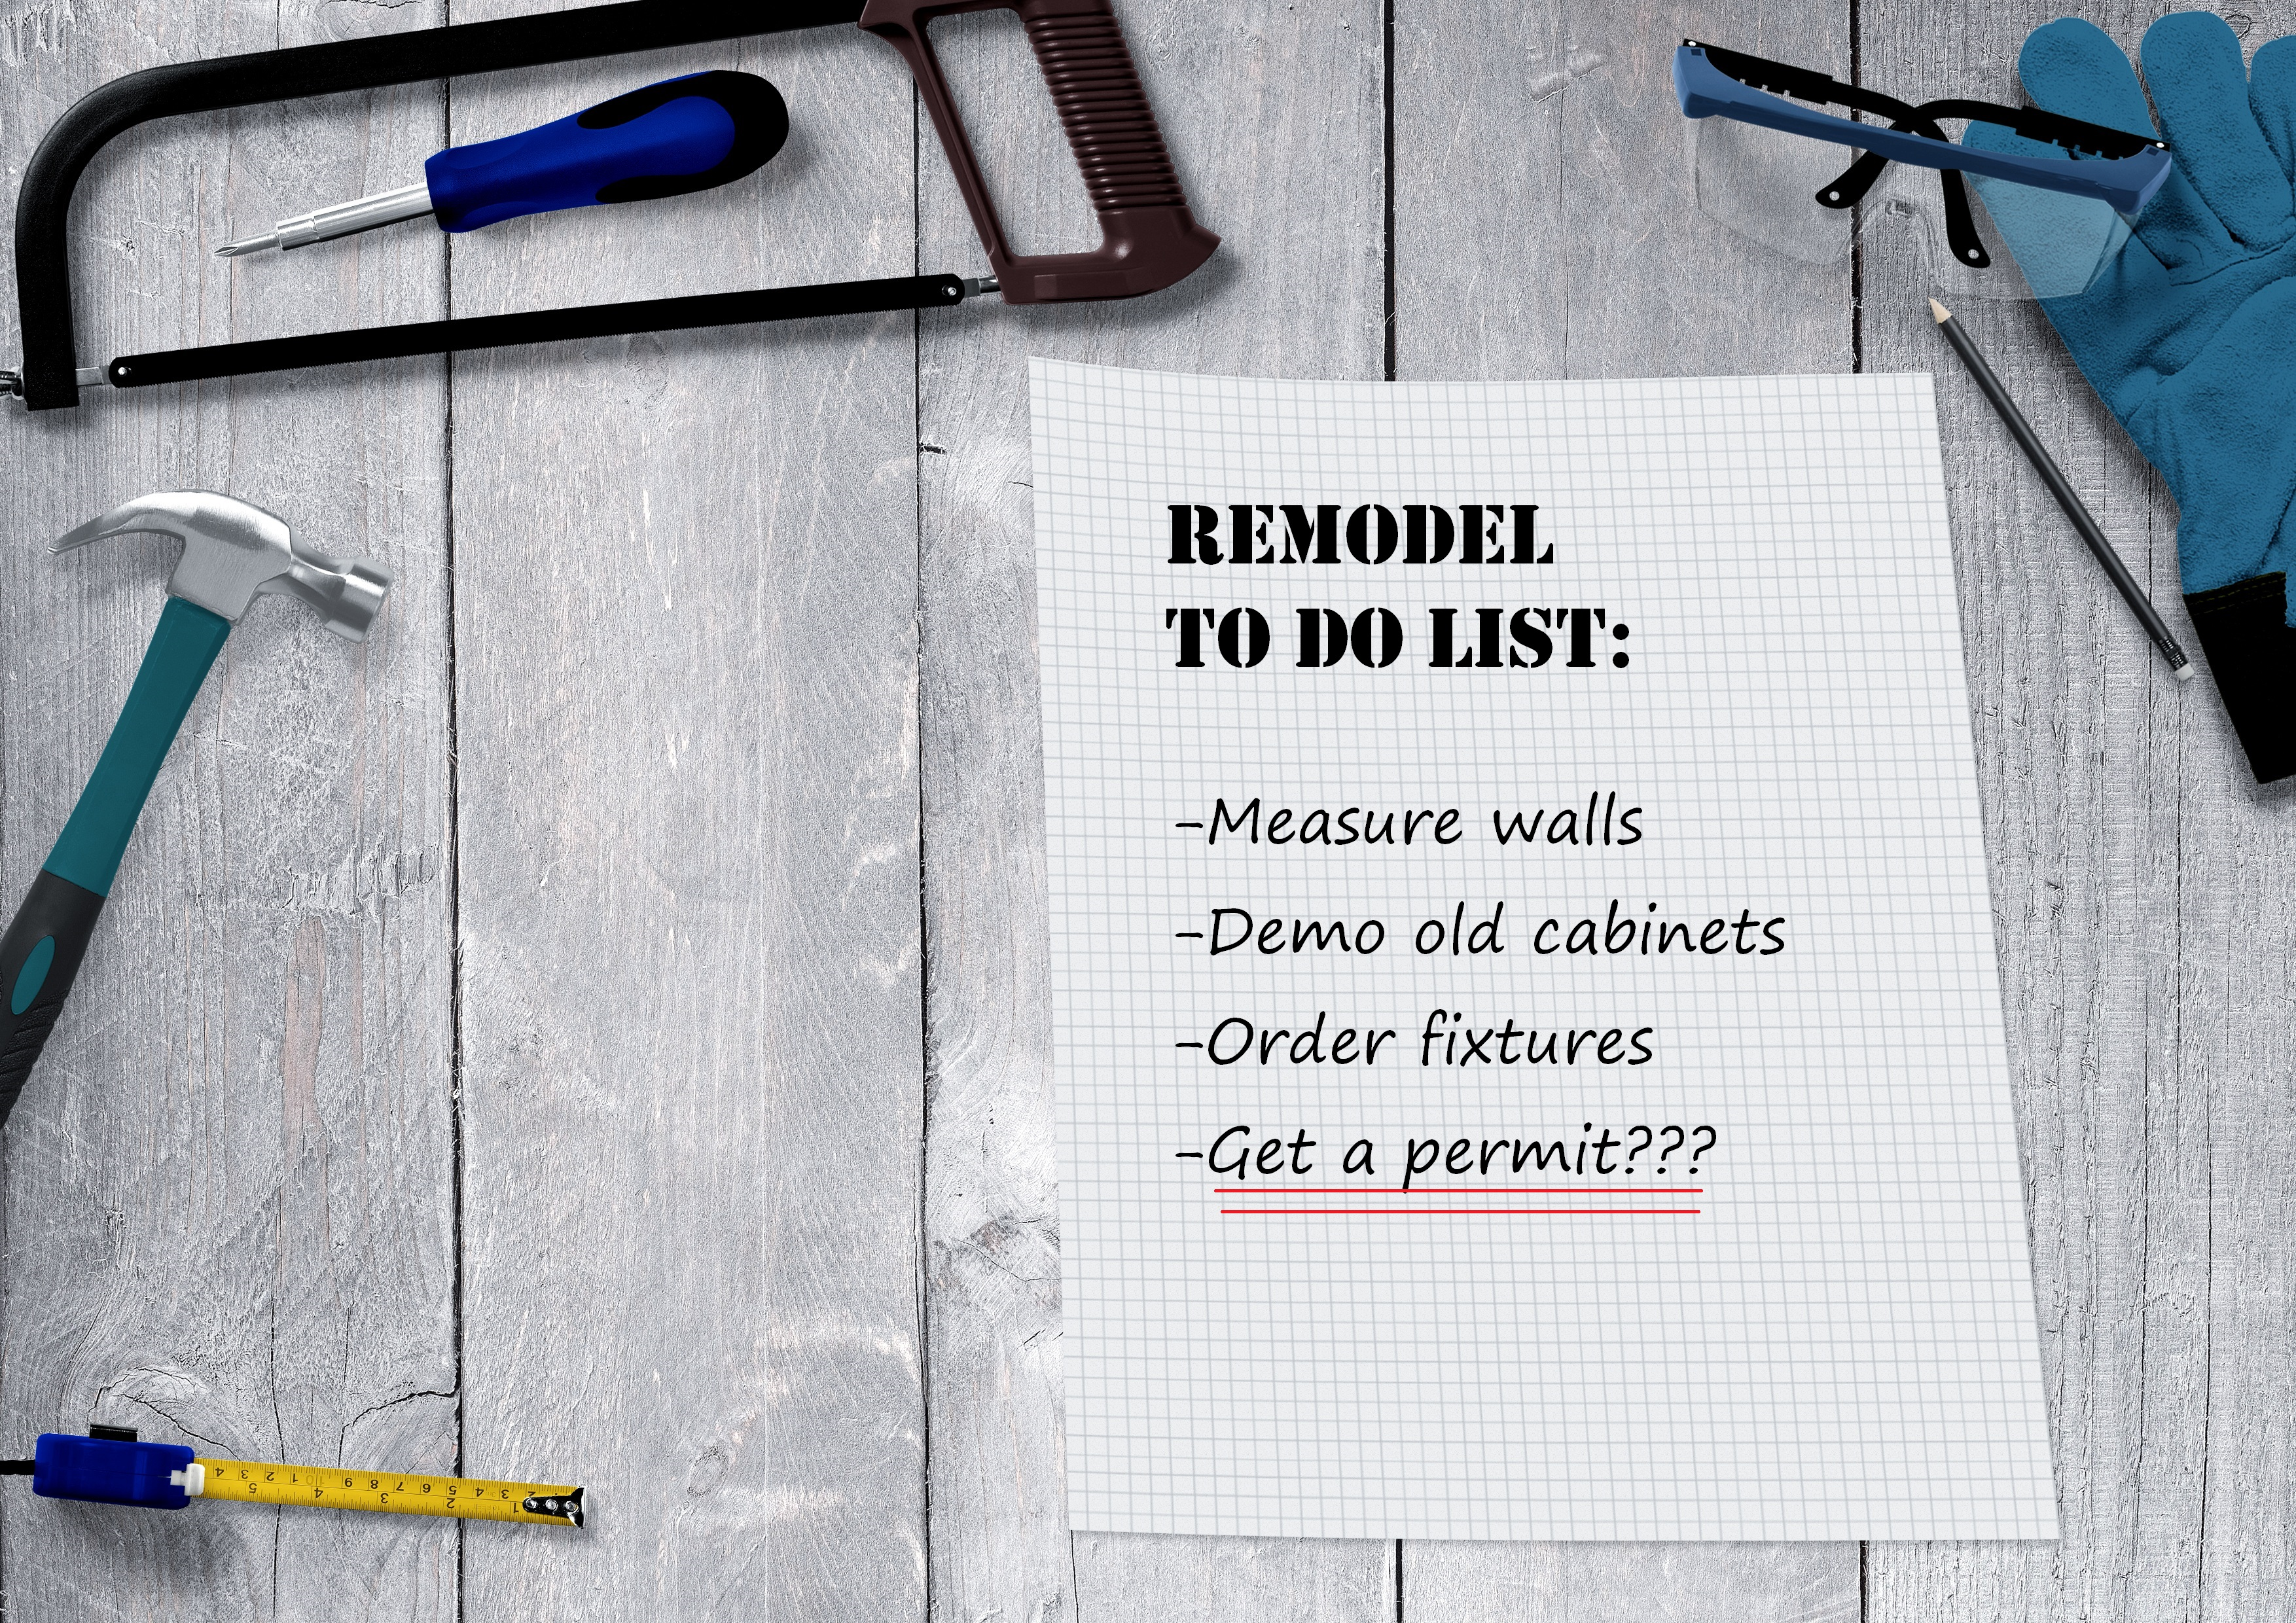 Remodeling in Mountain View: When you need a building permit and when you don't.